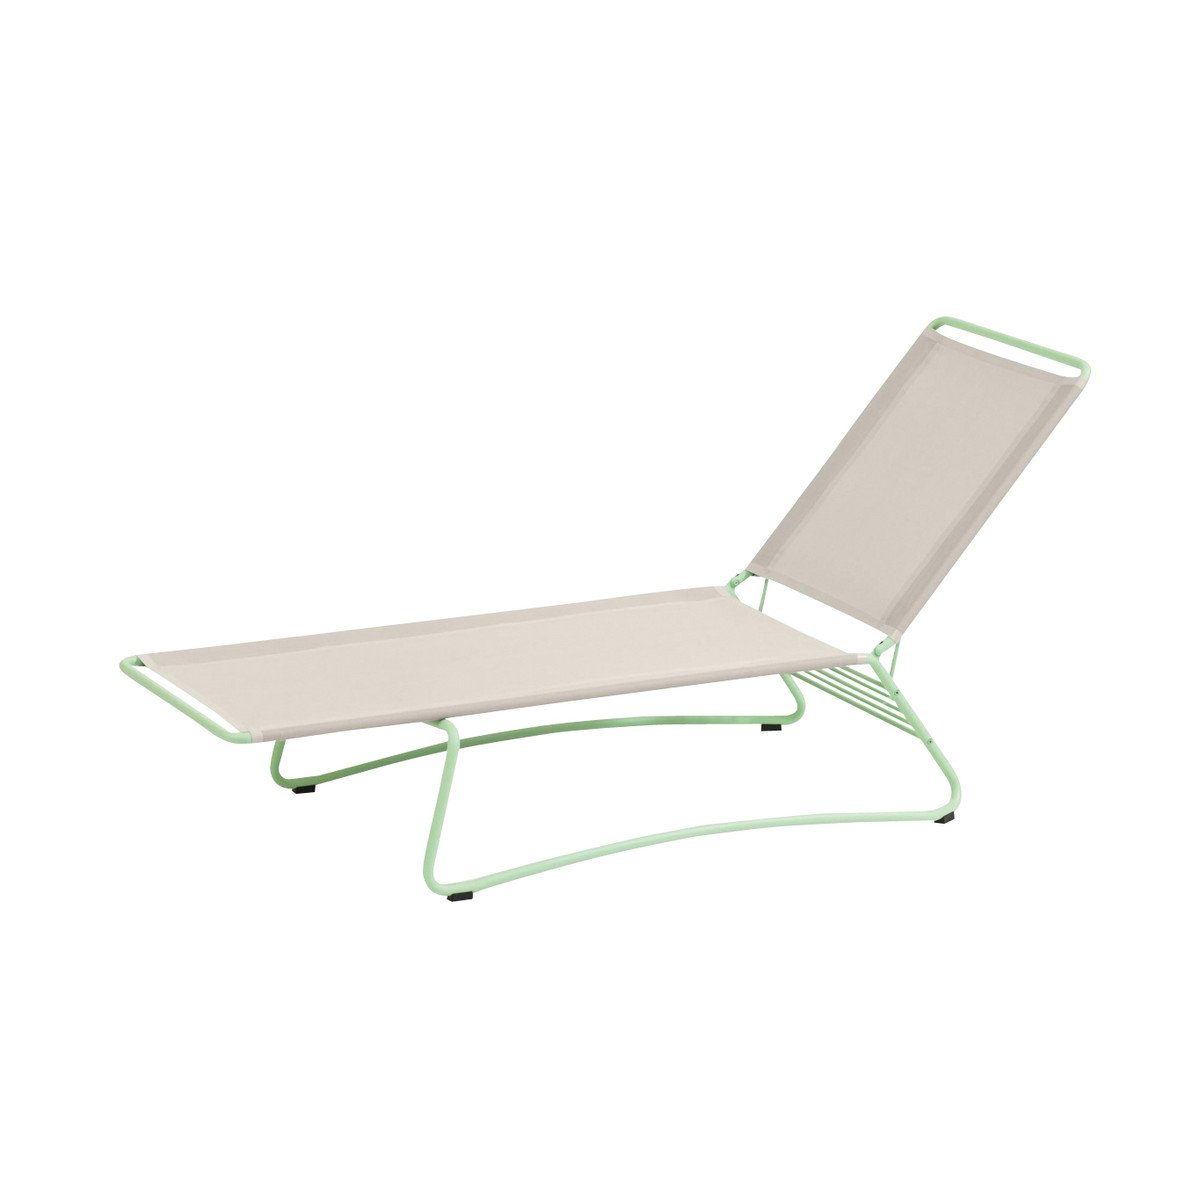 amazing inspiration ideas sun loungers. Weish upl Balcony Sun Lounger stackable powder coated frame pastel green  Batyline light amazing inspiration ideas The Best 100 Amazing Inspiration Ideas Loungers Image